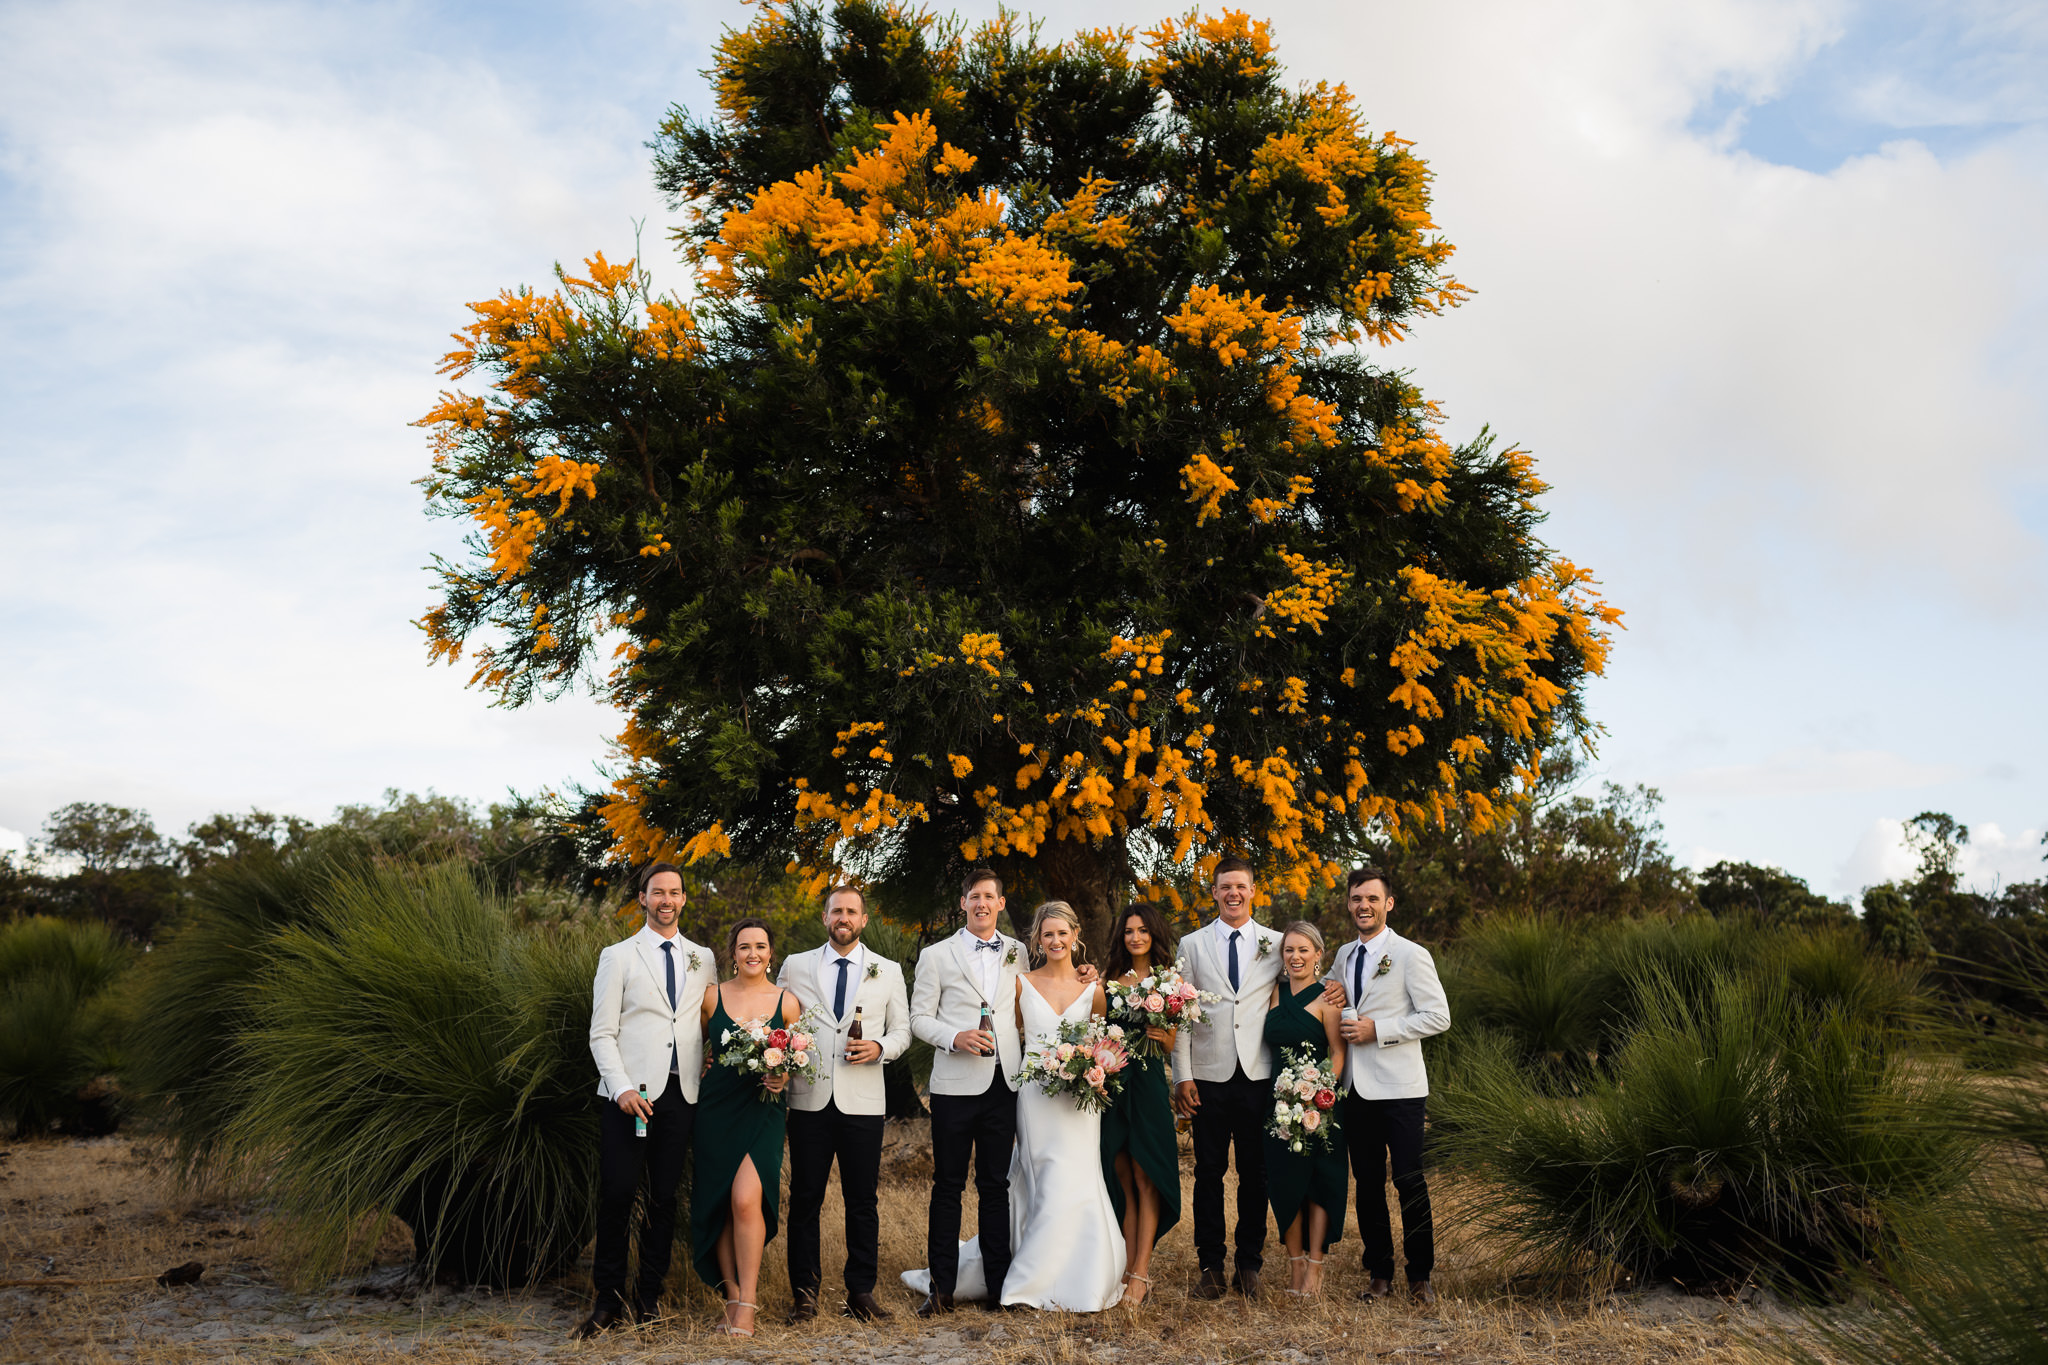 Bridal party posing in front of yellow flowering Australian Christmas tree at farm wedding at Solitaire Homestead in Yallingup